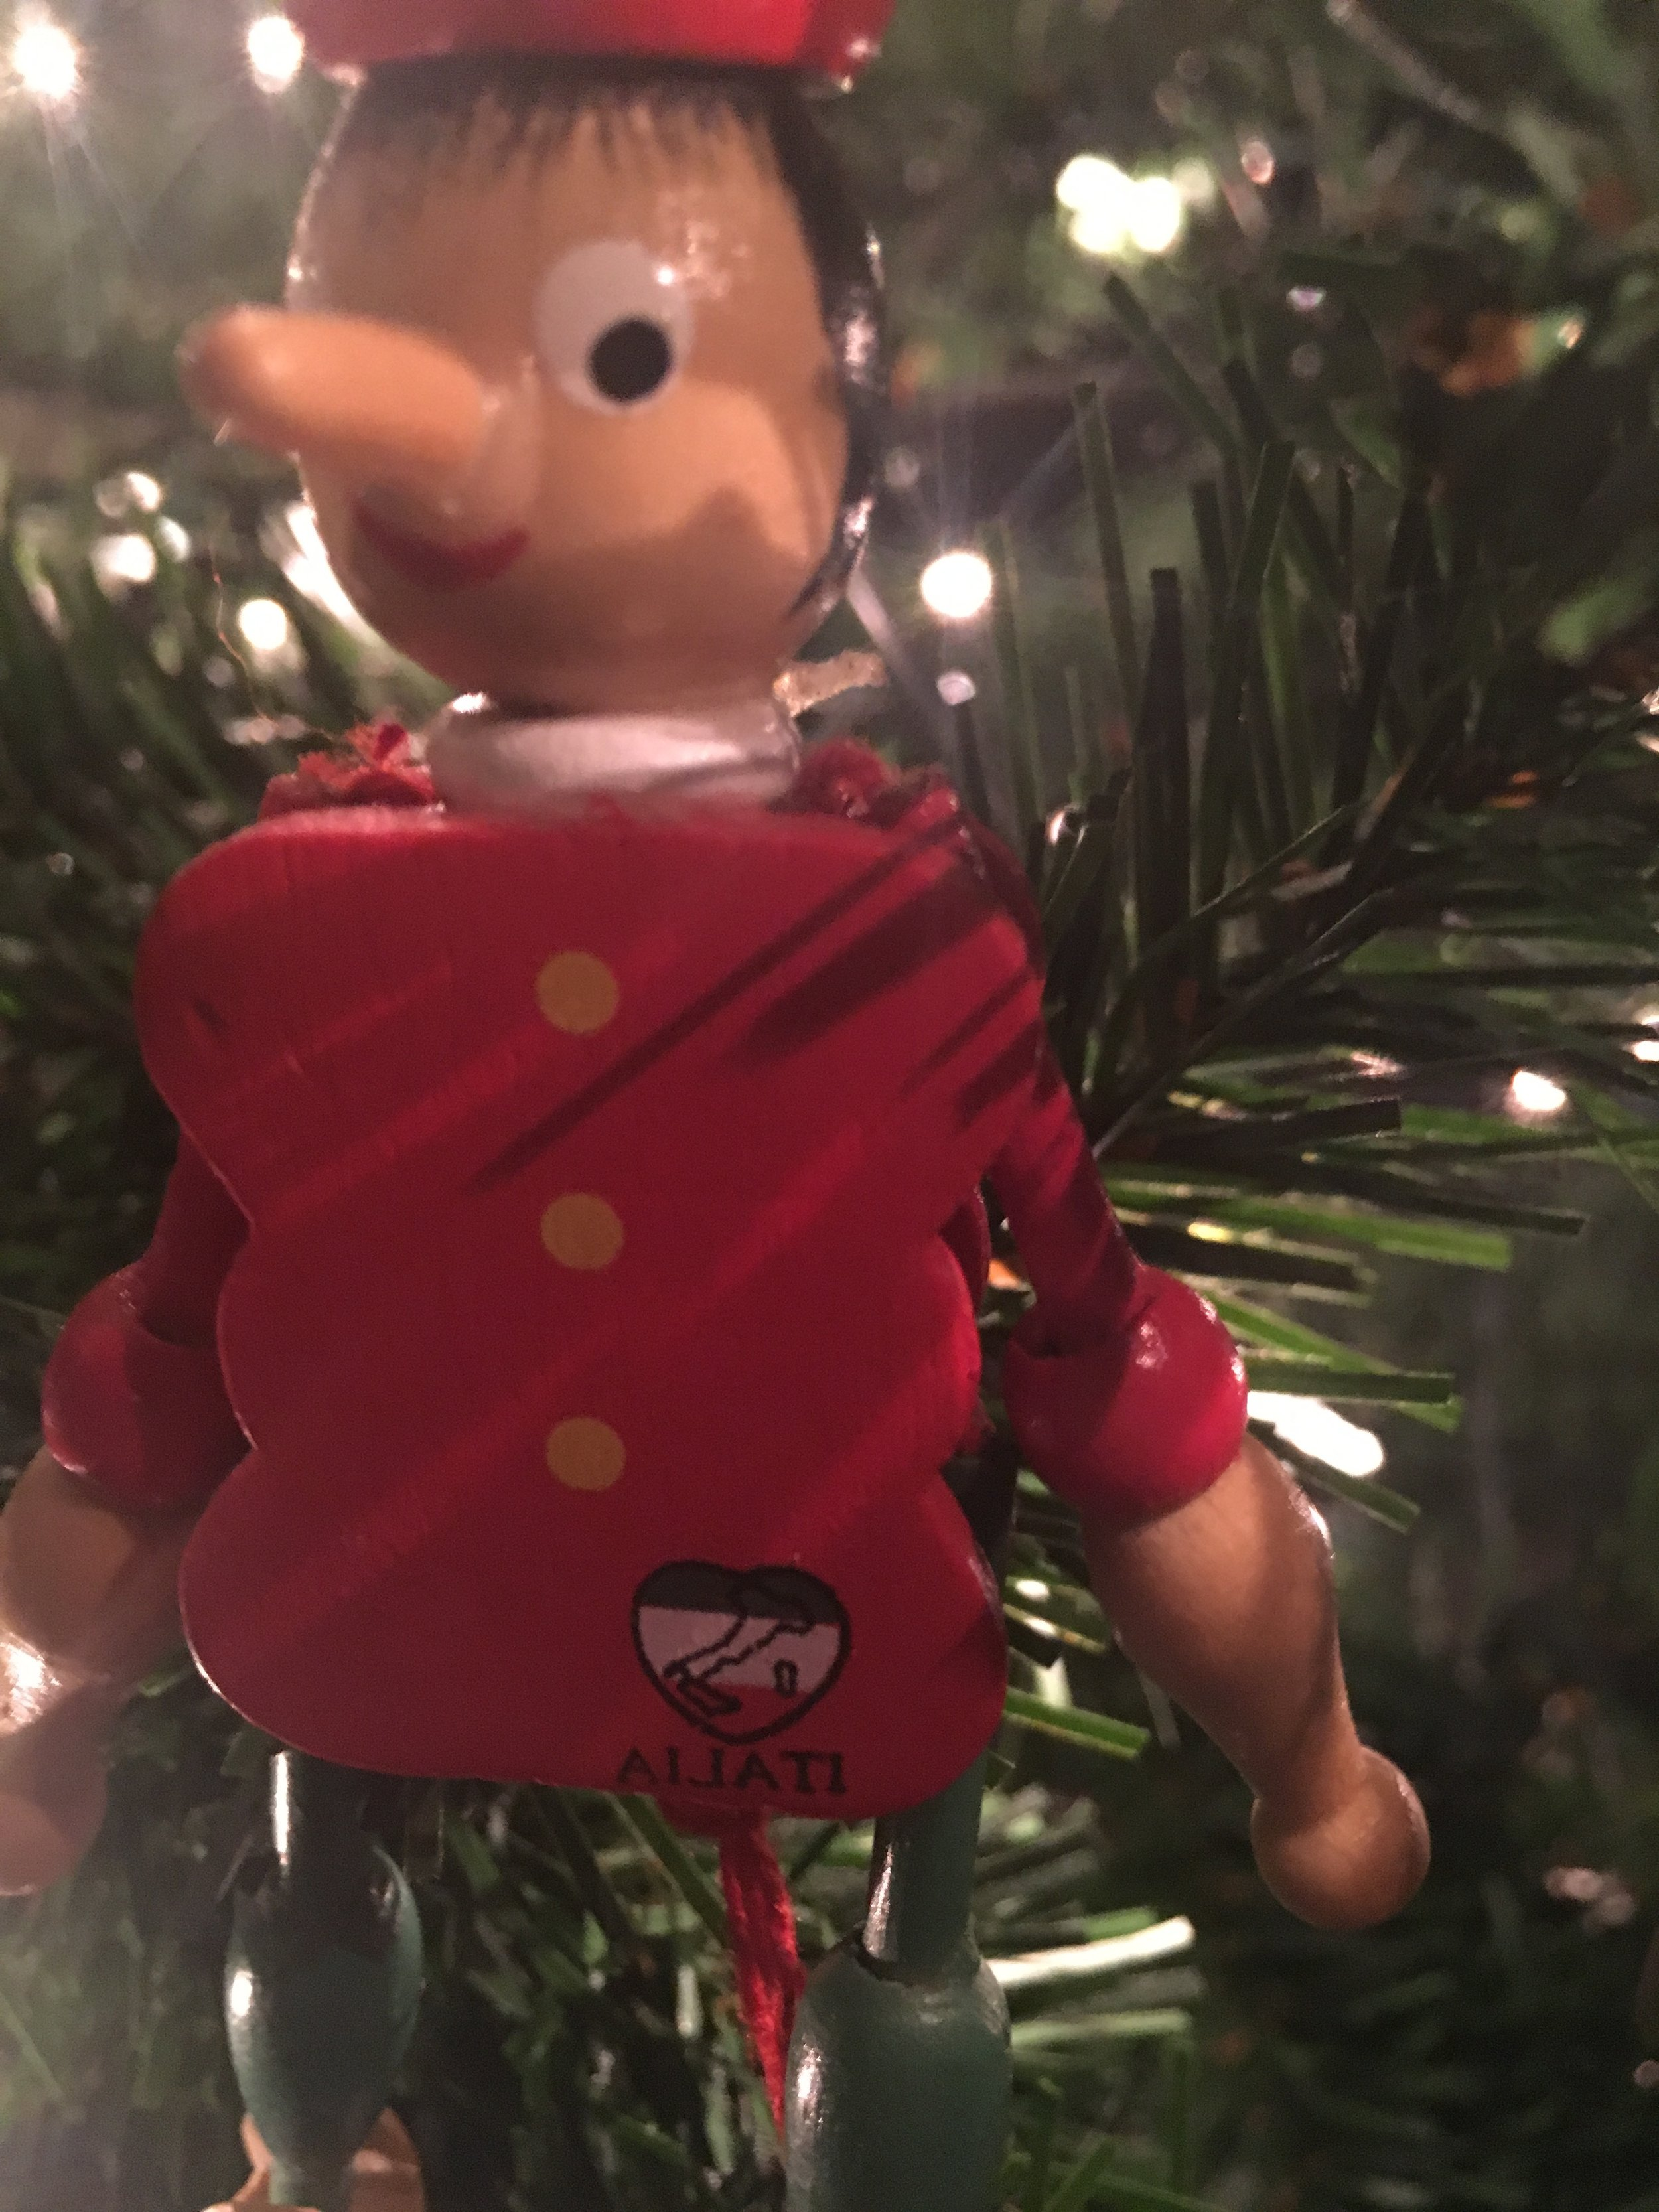 One of my favorite ornaments. In fact, I keep this out all year long. I got this Pinocchio ornament during my 2014 trip to Italy! This was one of the cheapest souvenirs I purchased and one of my favorites. I believe it was no more than 1 euro!